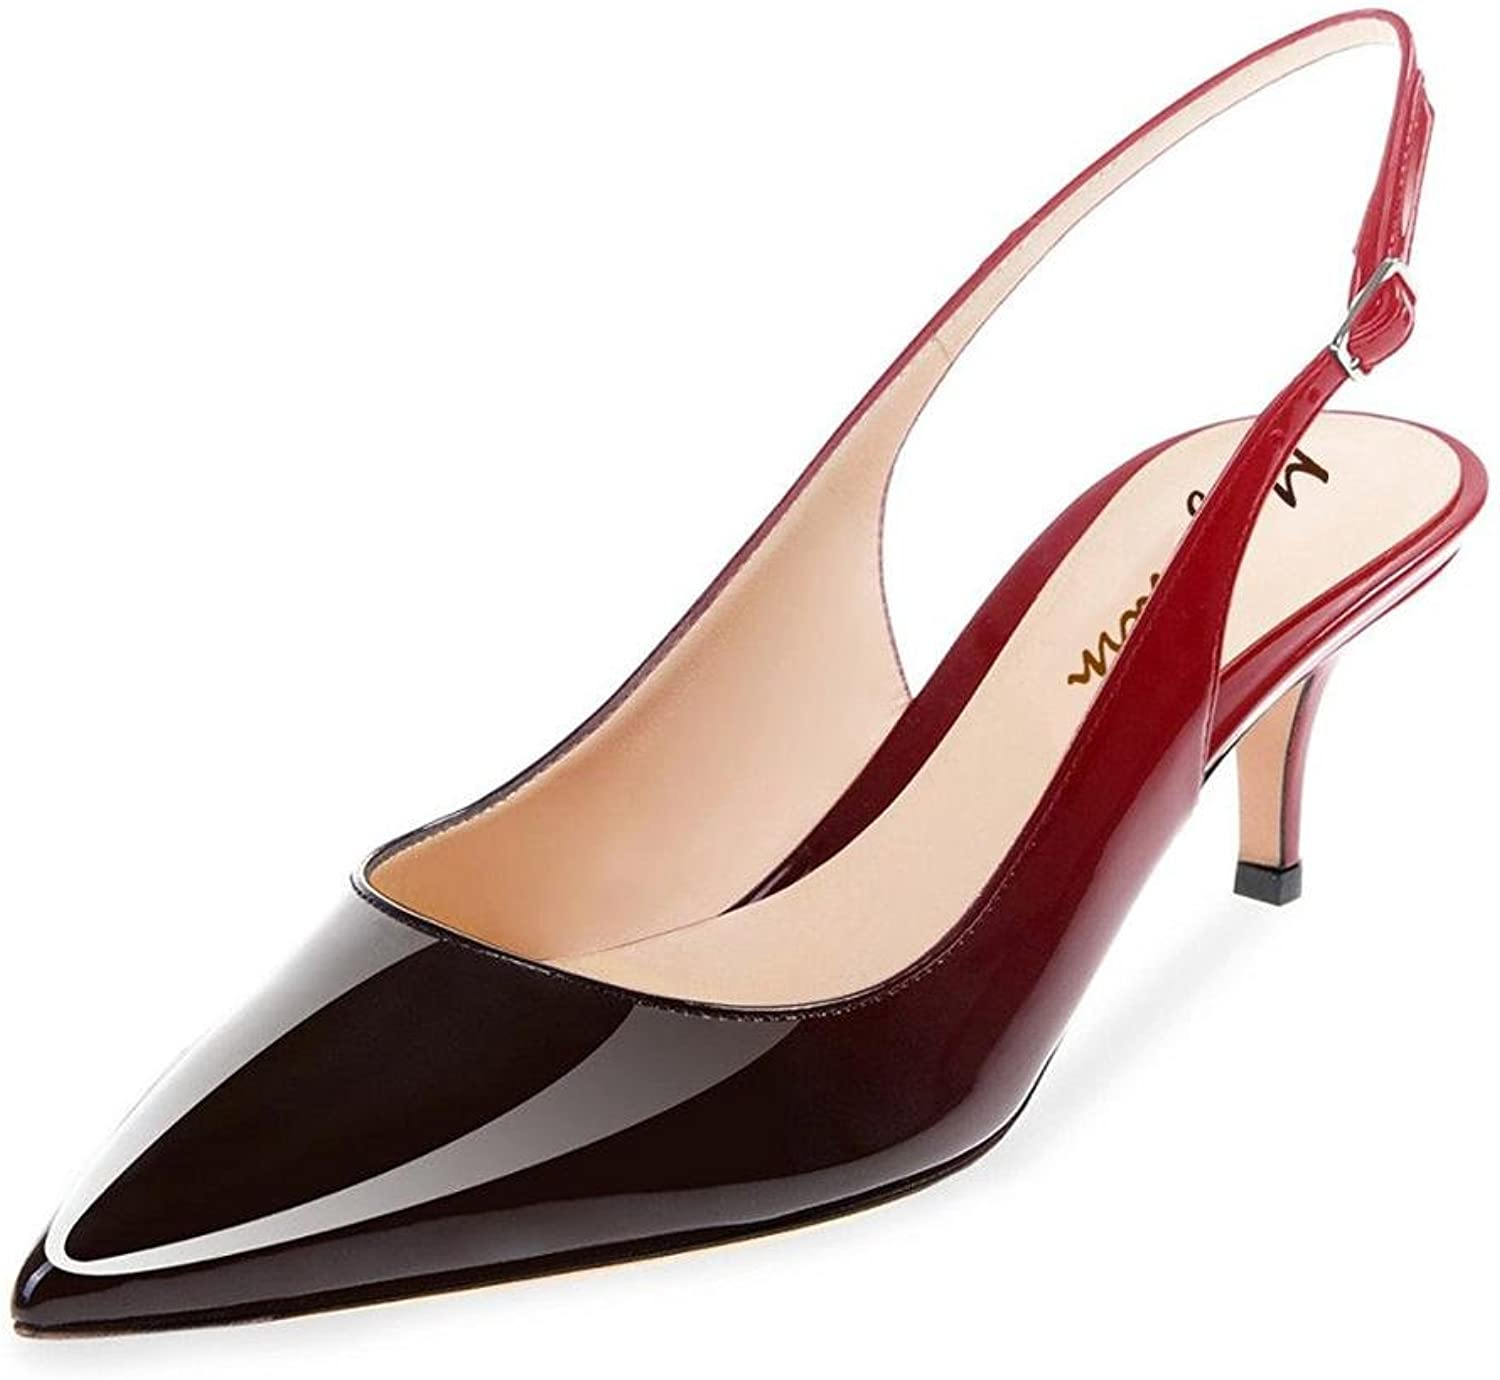 Maguidern Patent Leather Slingback Pumps, Women's Pointed Toe Slingbacks Buckle Ankle Strap Low Heel shoes red Black Size 13